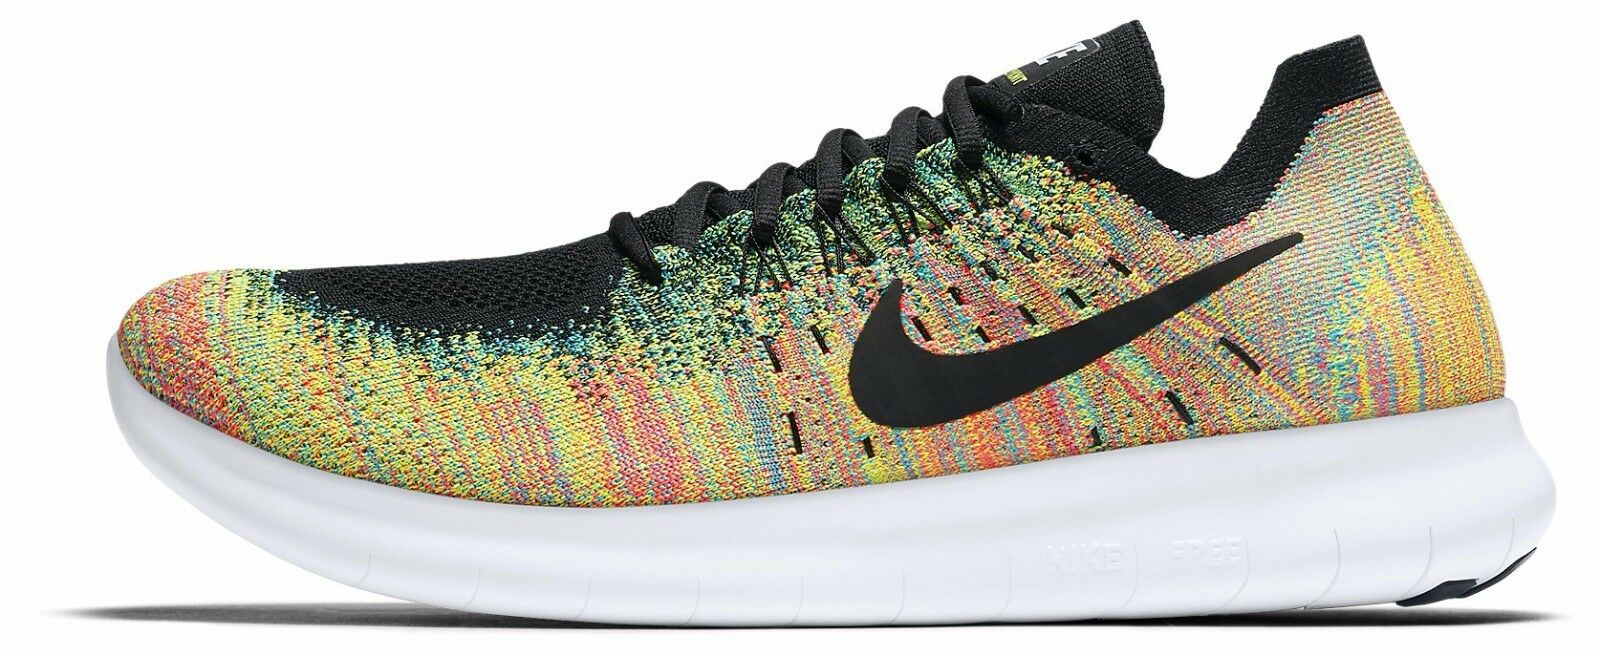 NIKE FREE RN FLYKNIT 2018 RUNNING SHOES 880843-005 Price reduction best-selling model of the brand